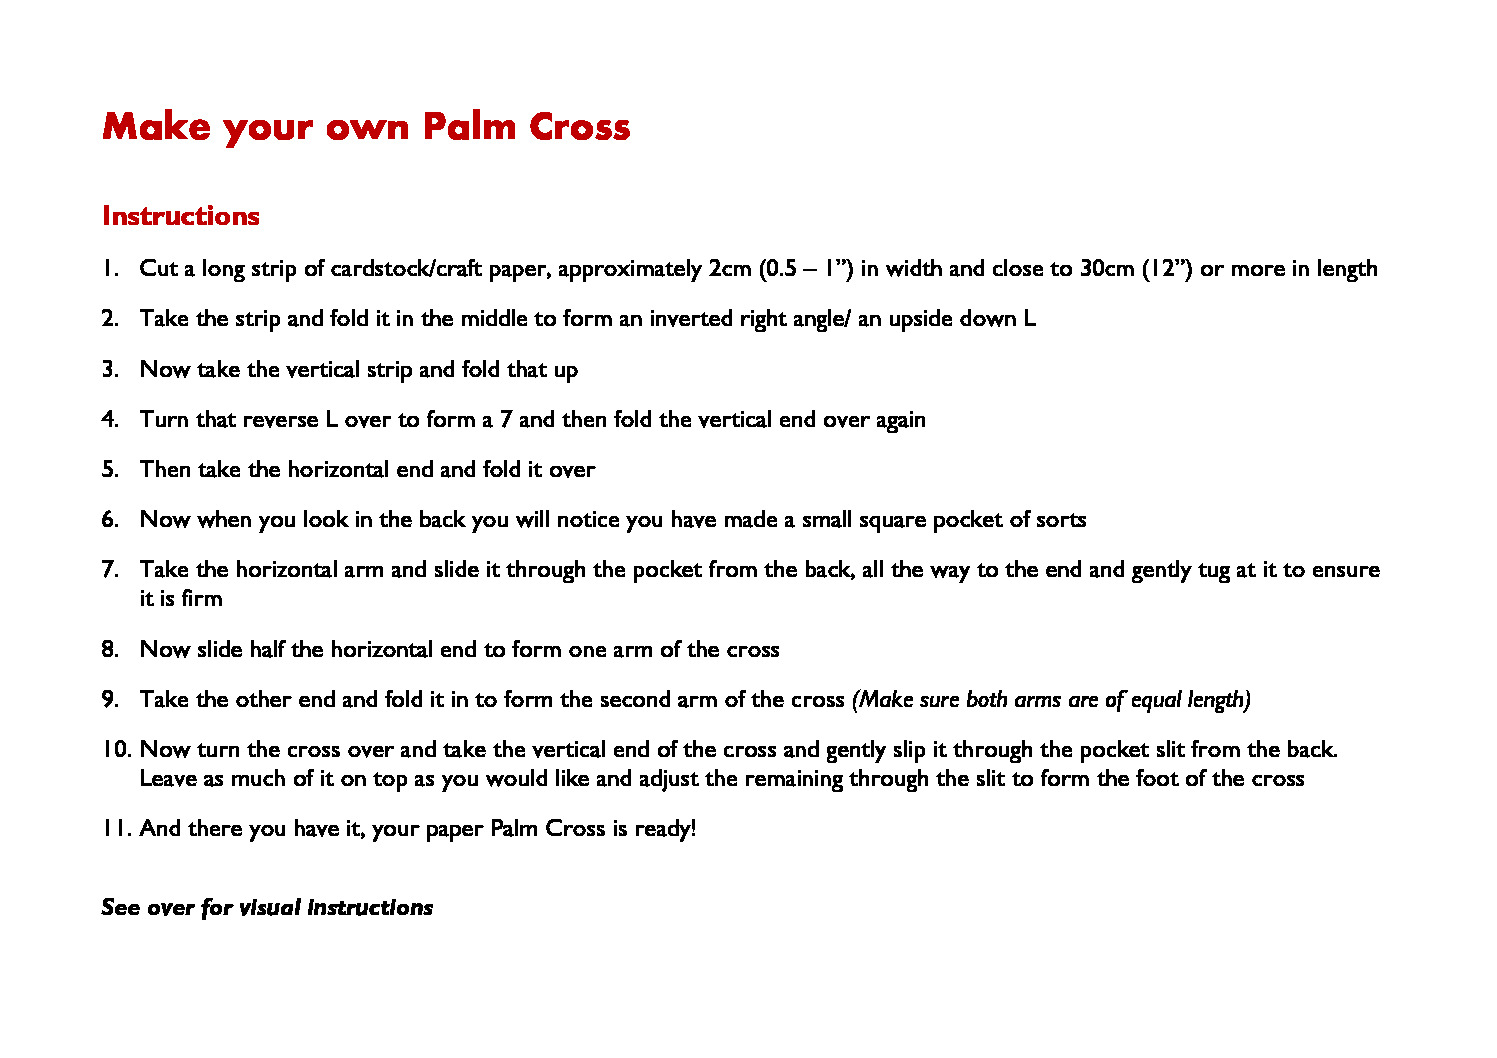 thumbnail of Make your own Palm Cross